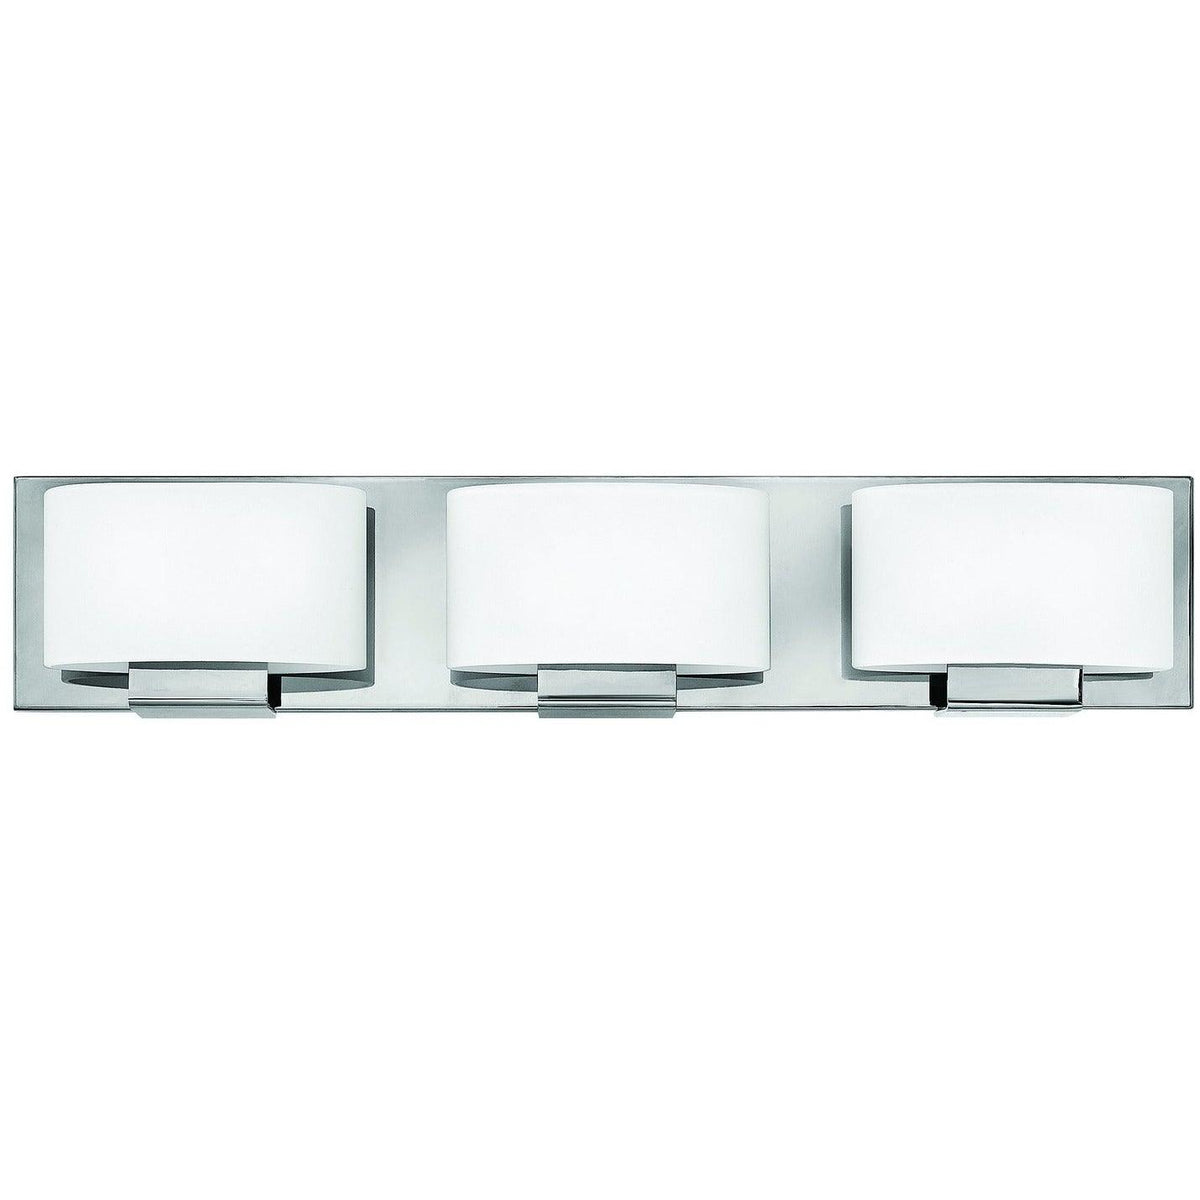 Hinkley Canada - 53553CM-LED - Three Light Bath - Mila - Chrome